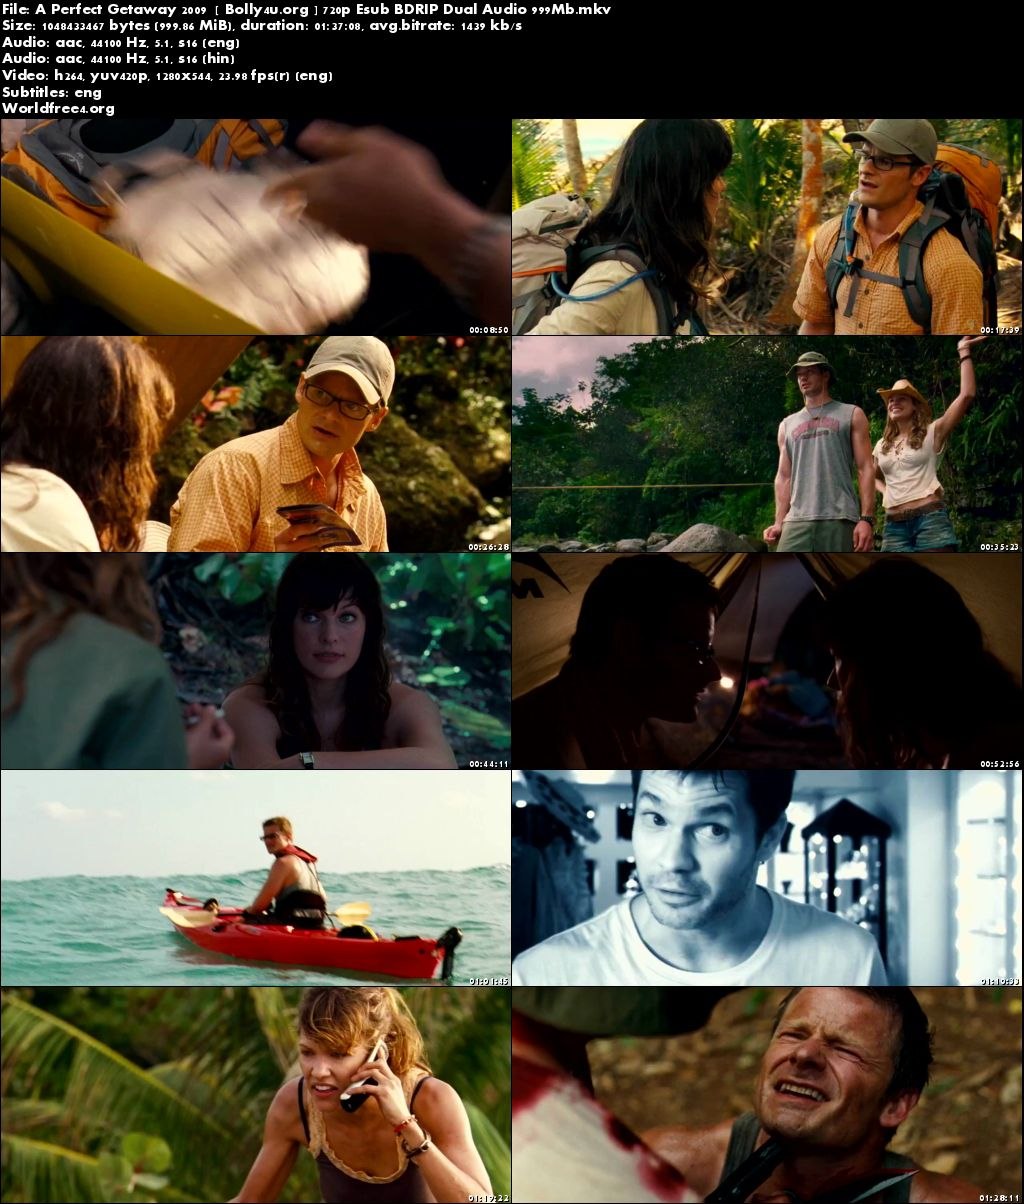 A Perfect Getaway 2009 BDRip 300Mb Hindi Dual Audio 480p Download